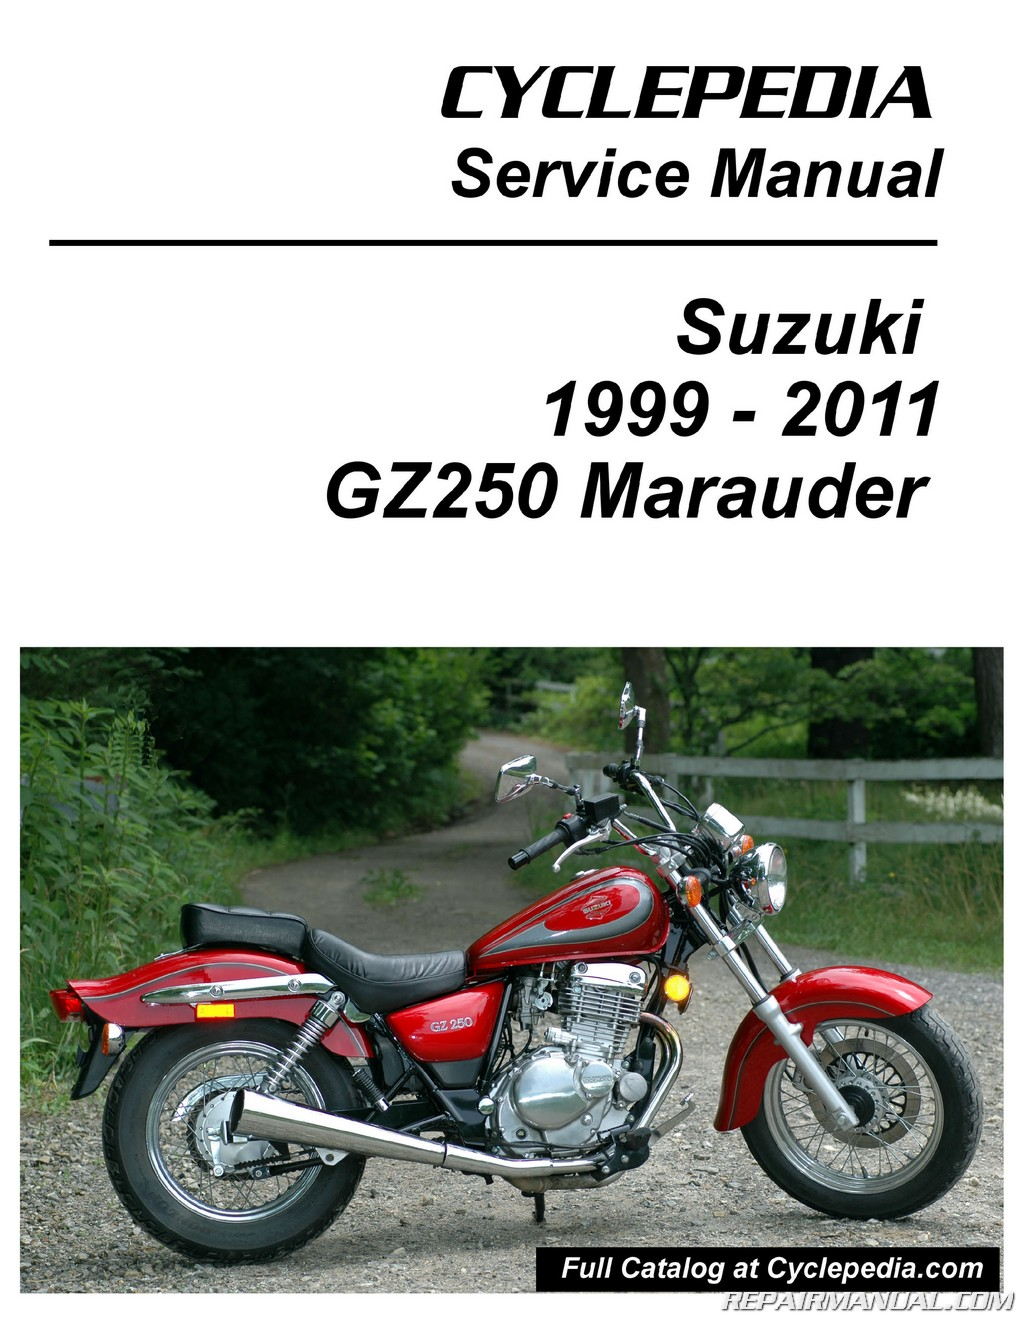 Suzuki Gz250 Marauder Cyclepedia Printed Service Manual 2002 Royal Enfield Wiring Diagram